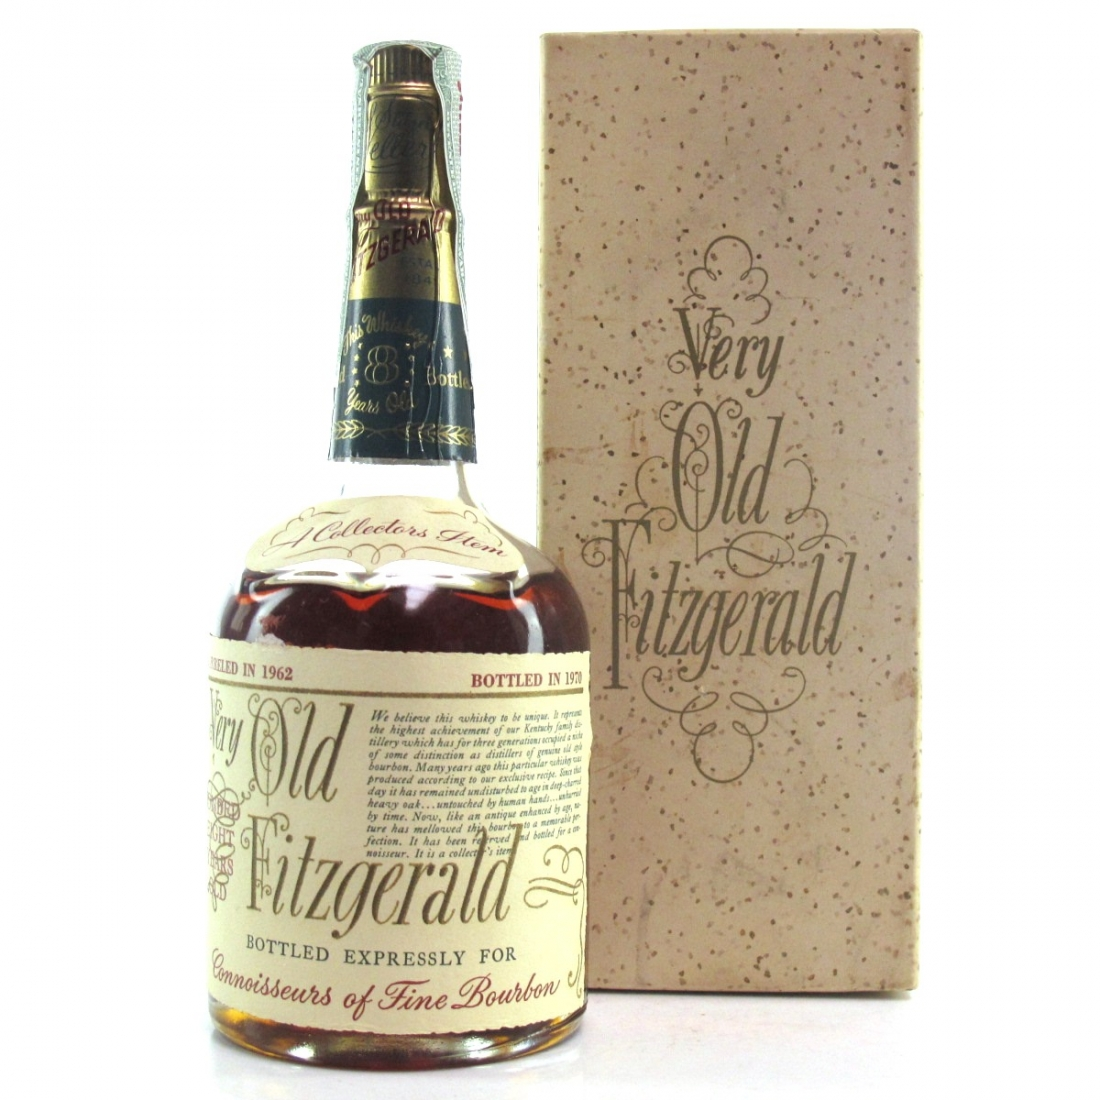 Very Old Fitzgerald 1962 Bonded 8 Year Old Half Pint / Stitzel-Weller